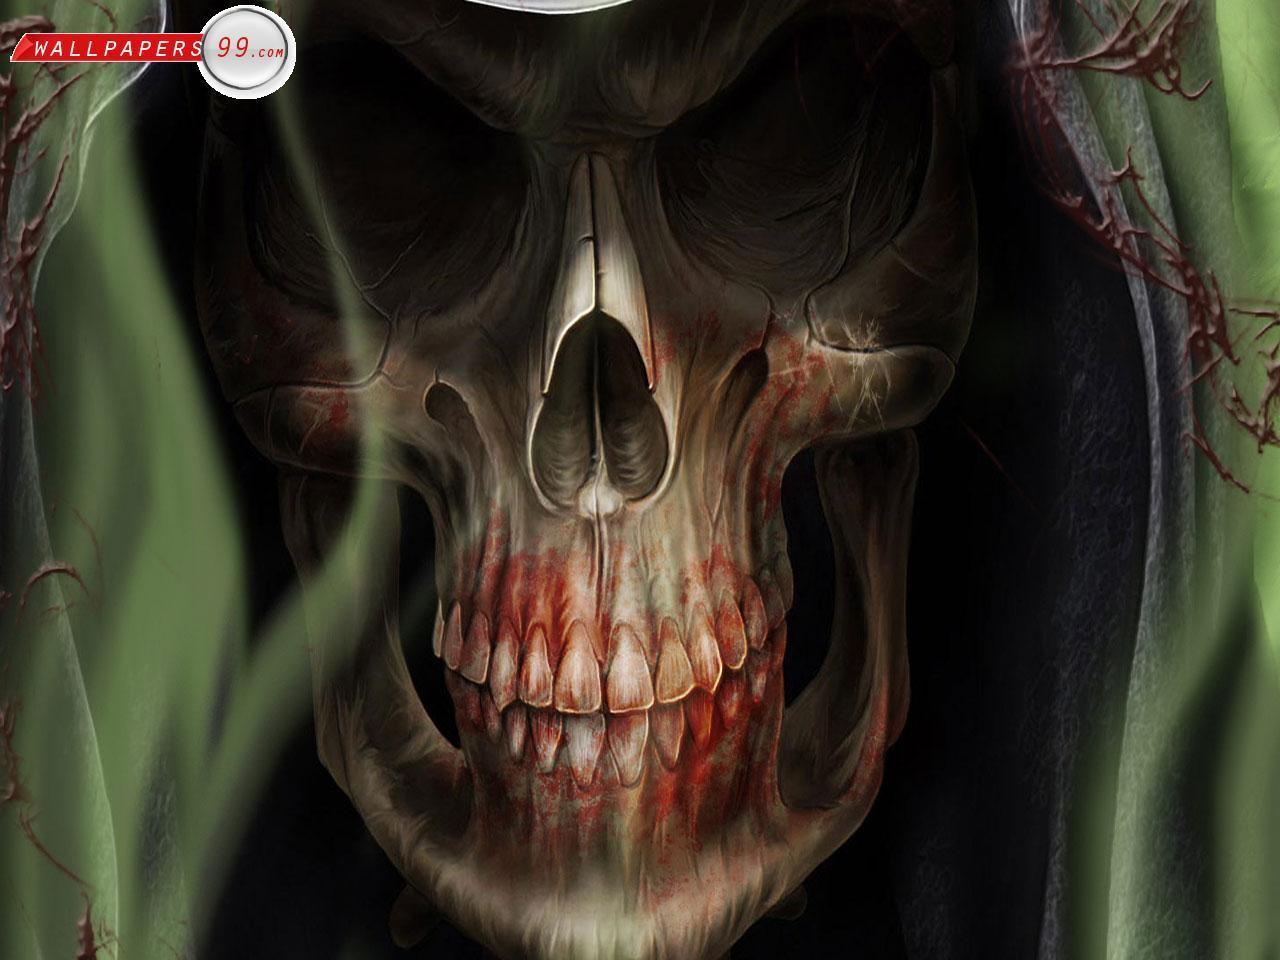 Scary Skull Wallpapers - Wallpaper Cave  Scary Skull Wal...